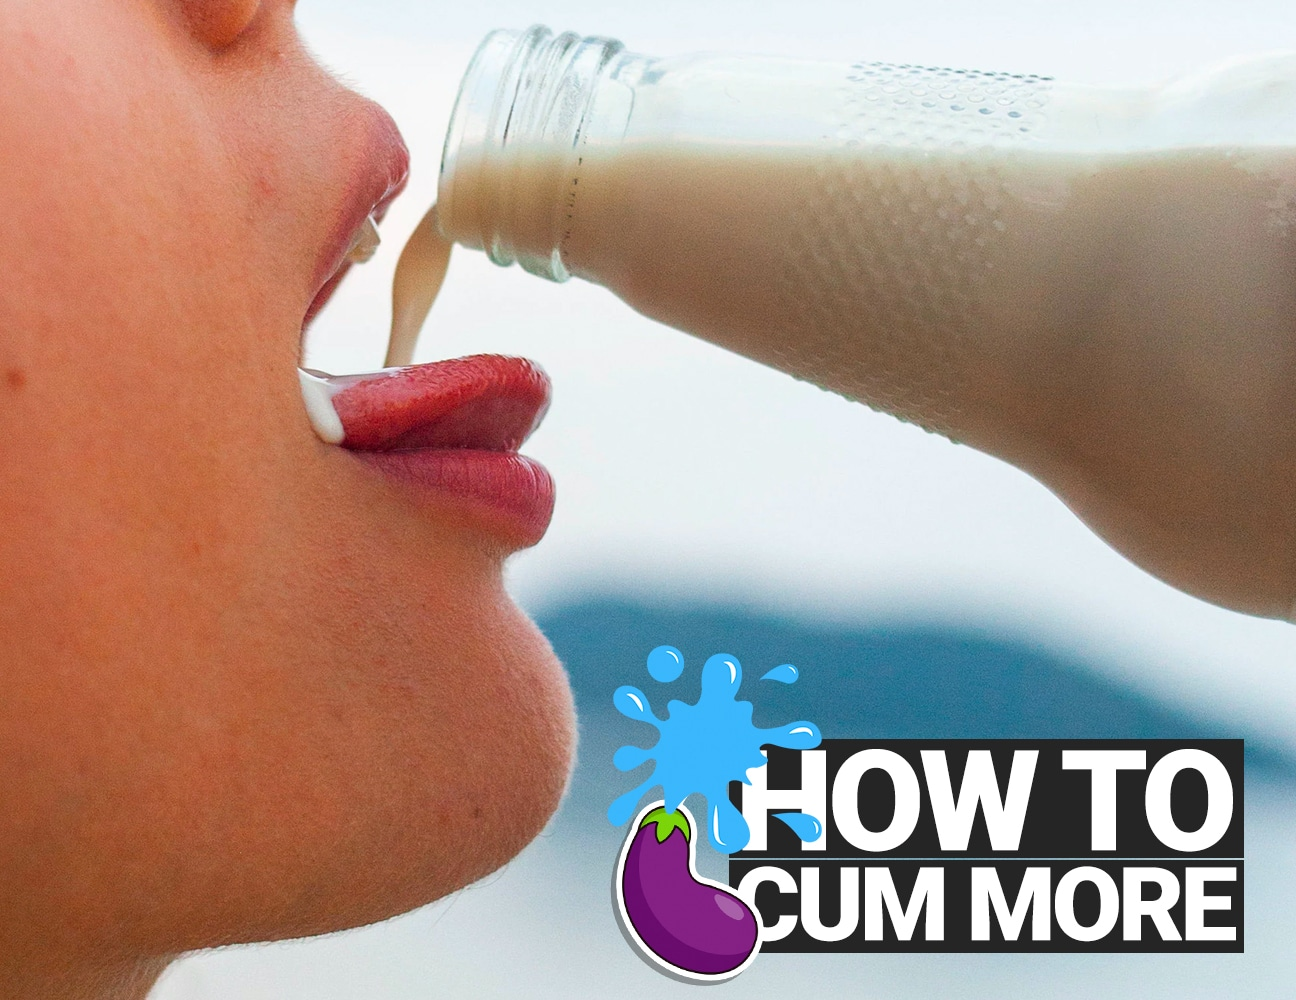 How to cum more: Girl drinking milk